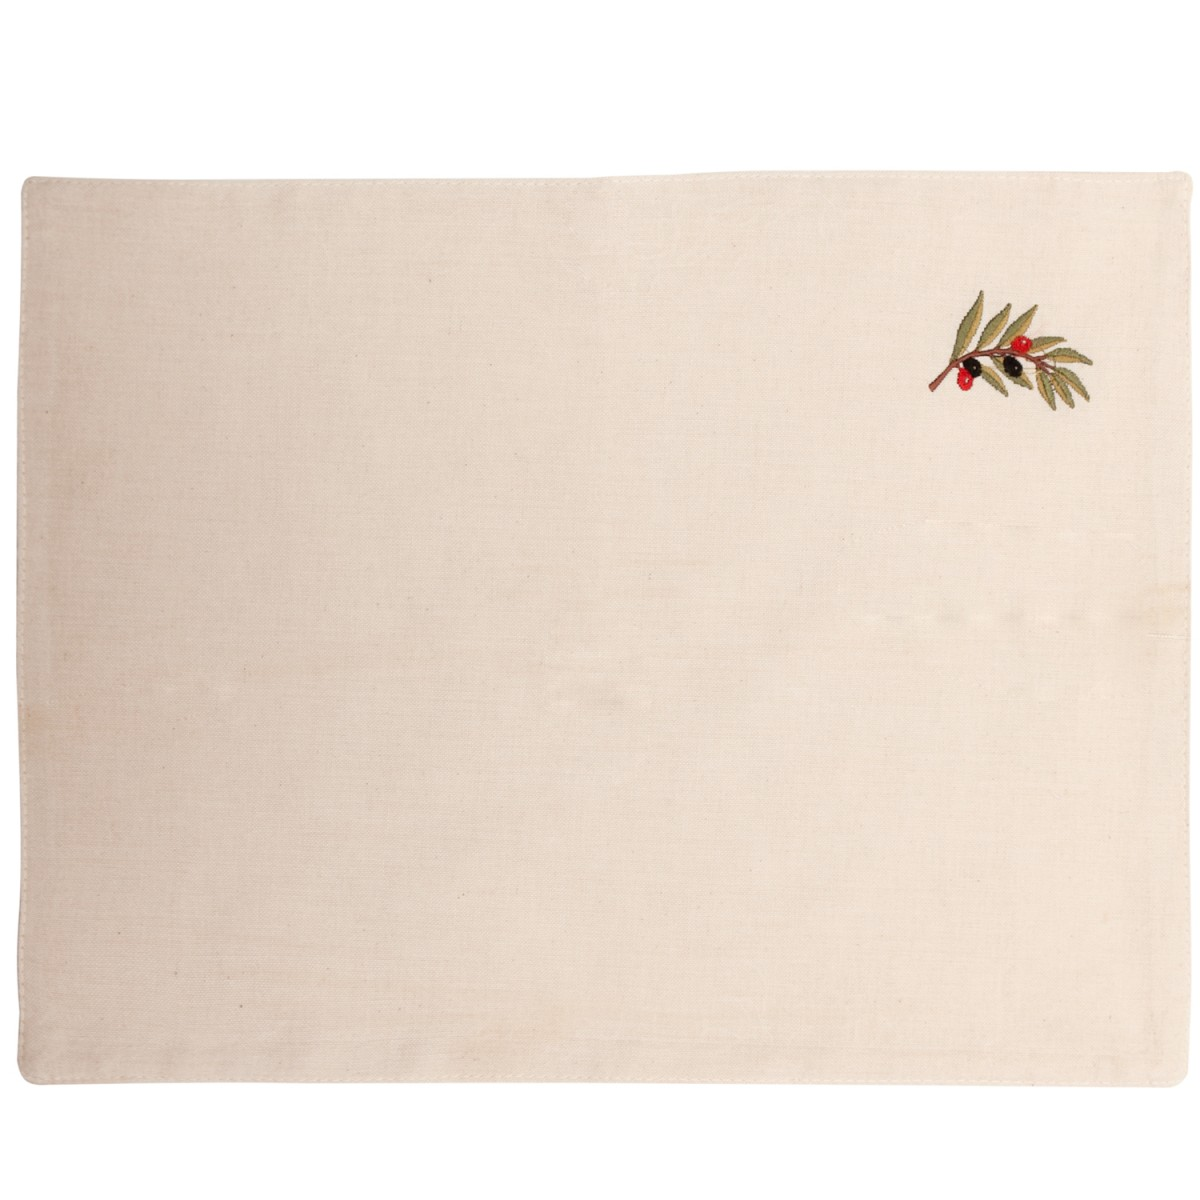 Set-of-Placemats-Olive-Embroidered-1